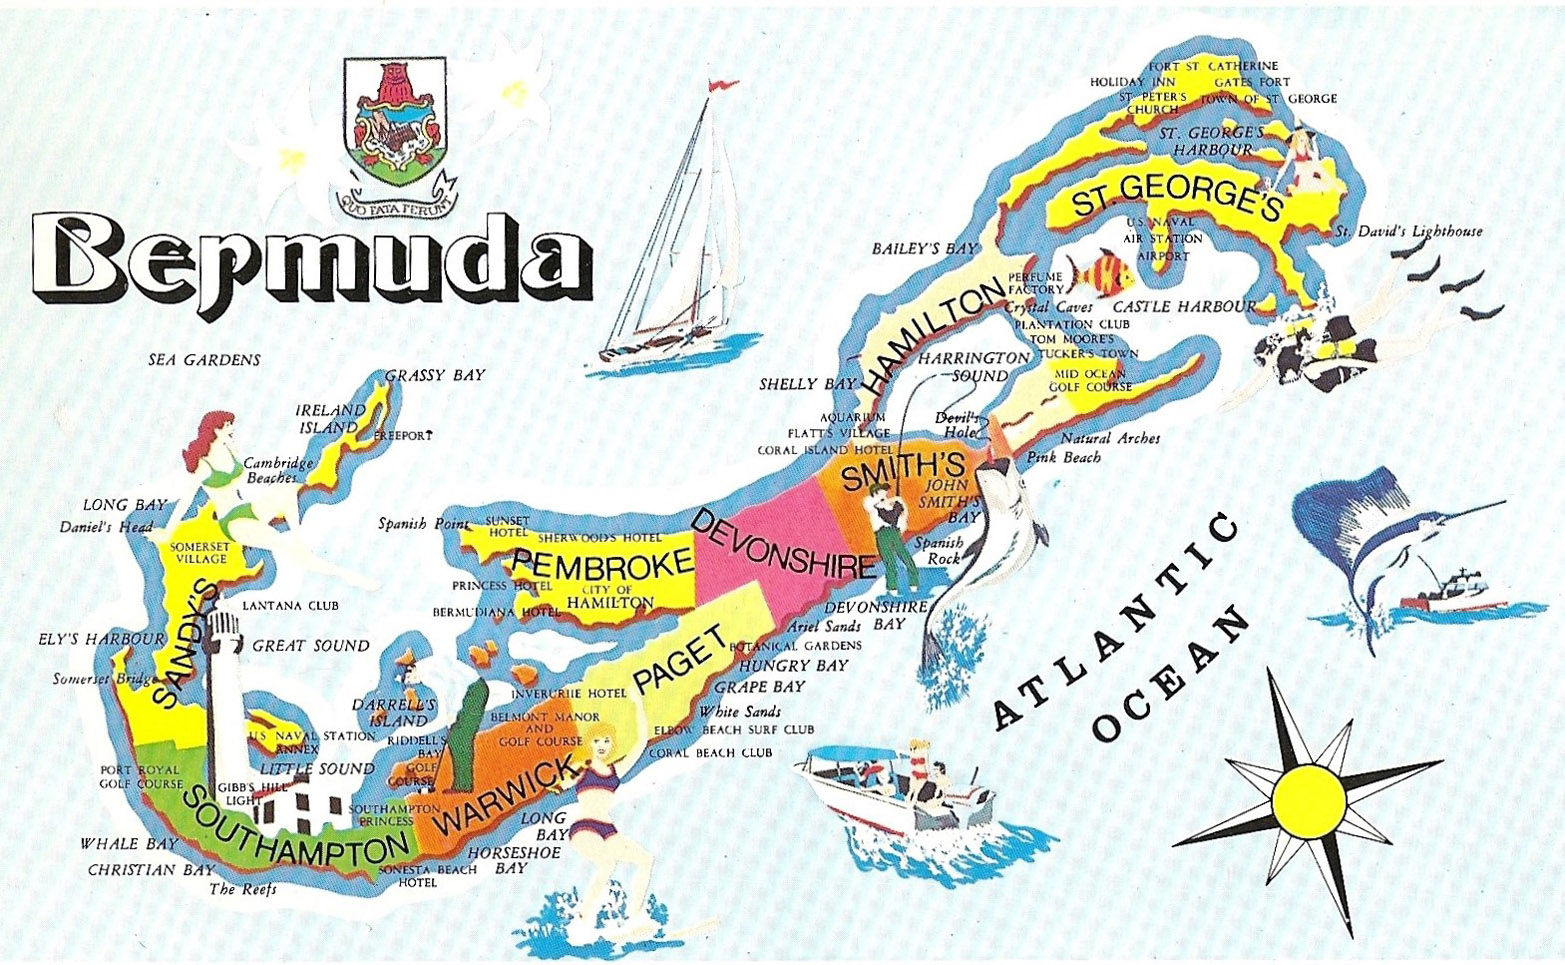 Bermuda Beach Map Large travel illustrated map of Bermuda | Bermuda | North America